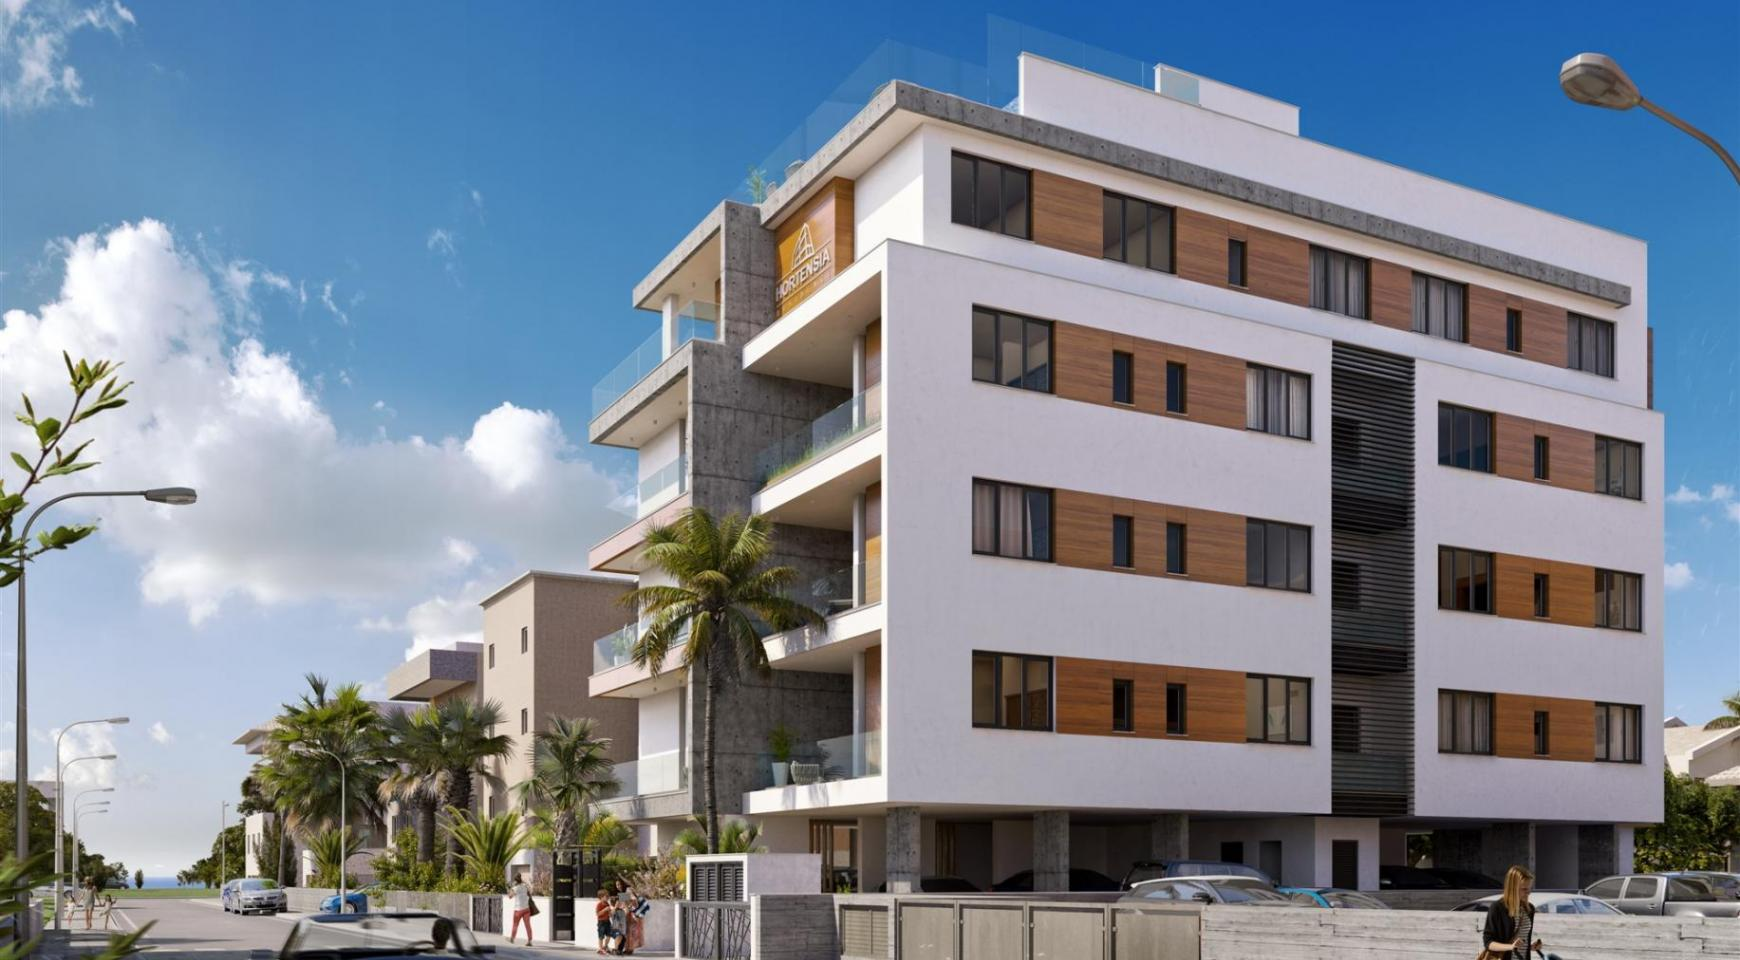 Hortensia Residence, Apt. 203. 3 Bedroom Apartment within a New Complex near the Sea - 1